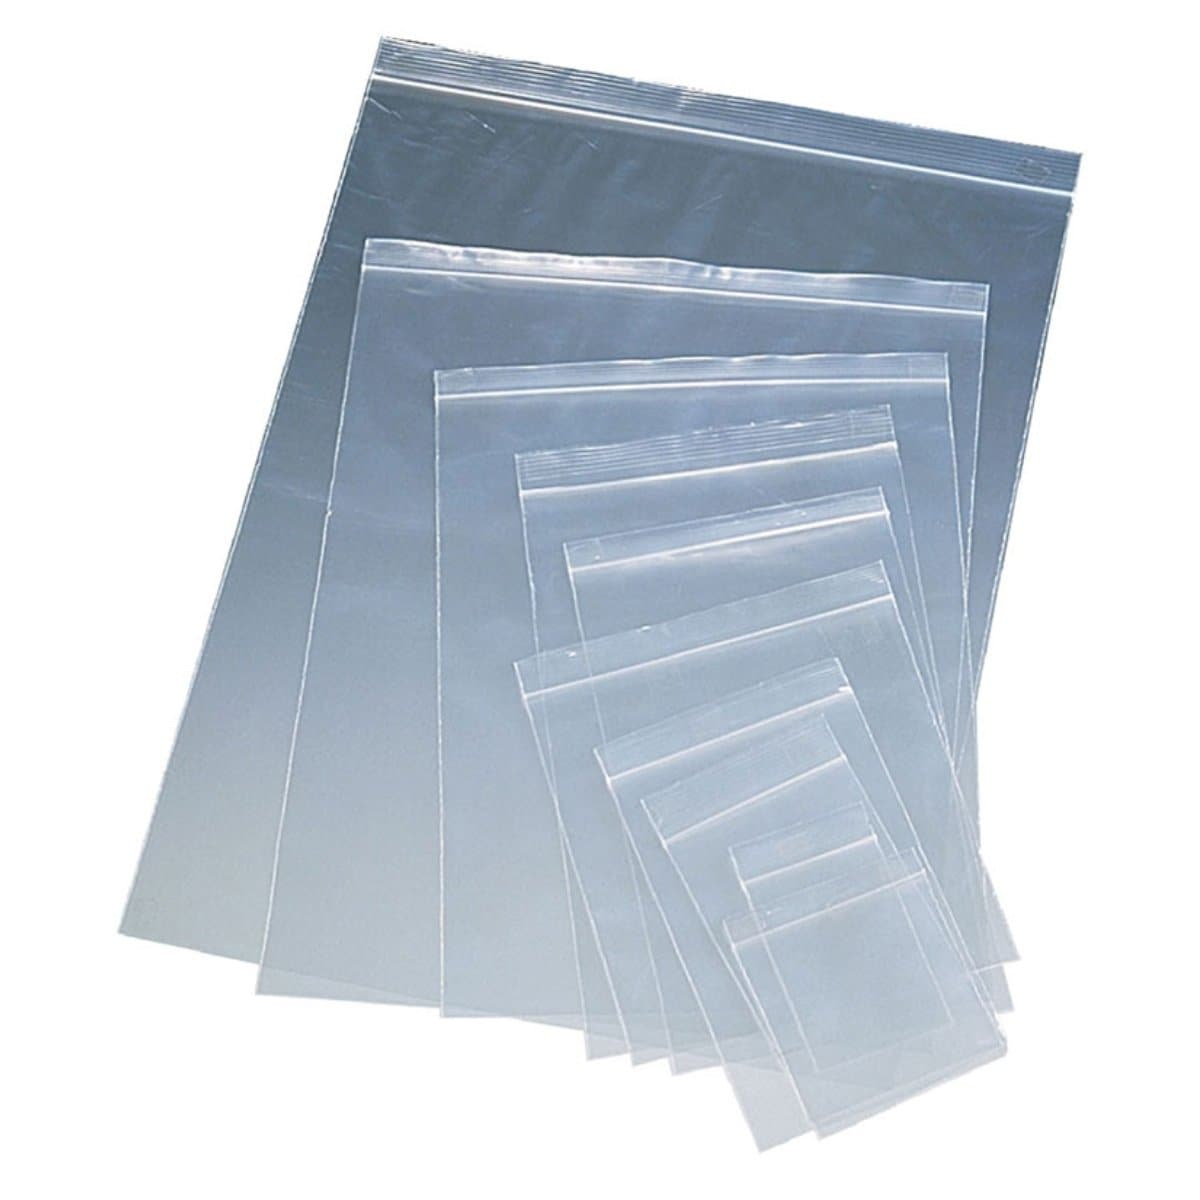 Zip Lock Bag 40 x 60 mm, Polypropylene, 60 microns, 20/pack, Clear